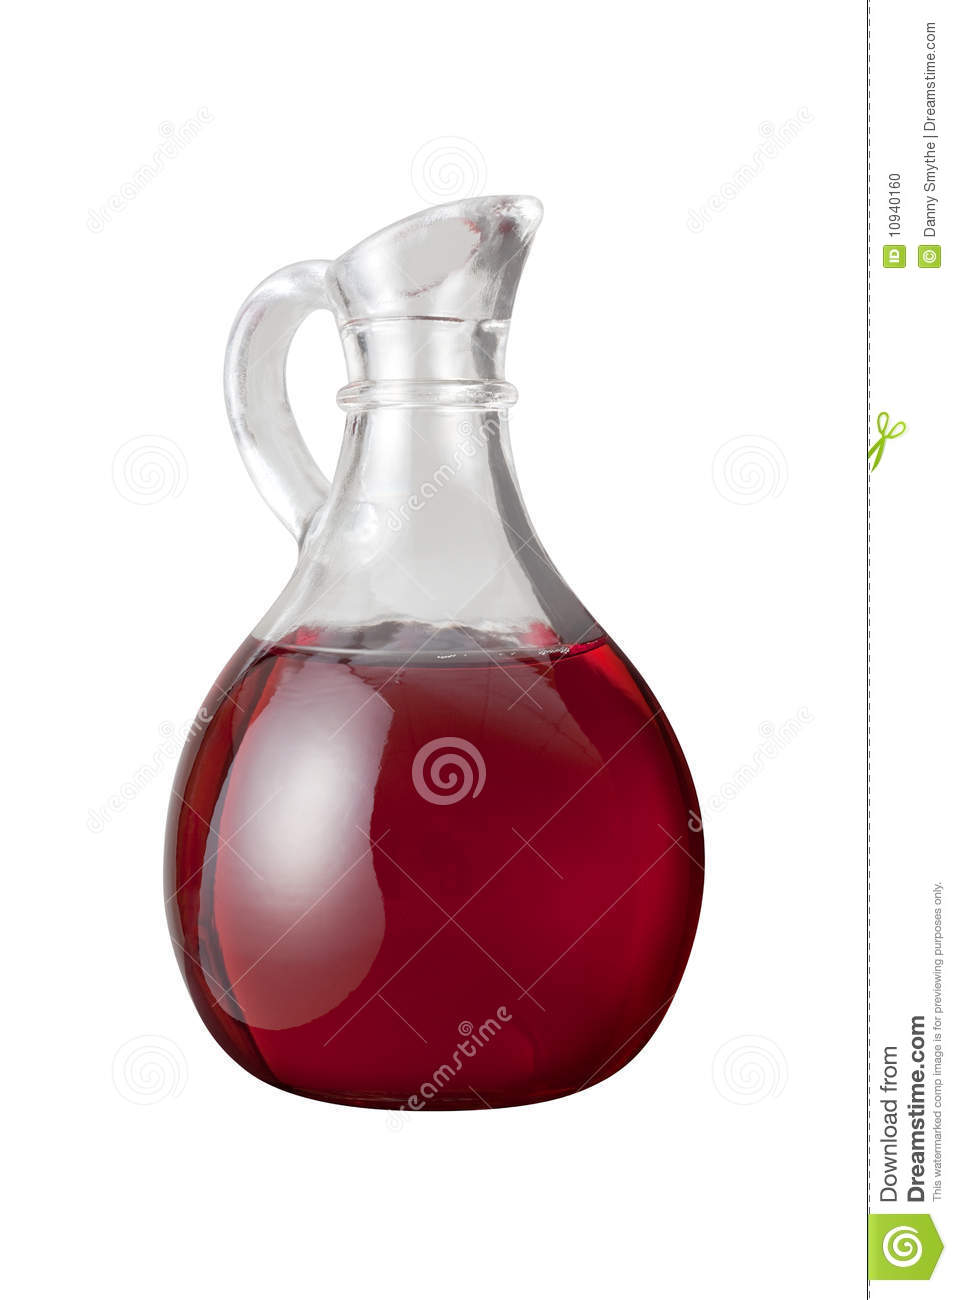 Red Wine Vinegar (with Clipping Path) Stock Photo.